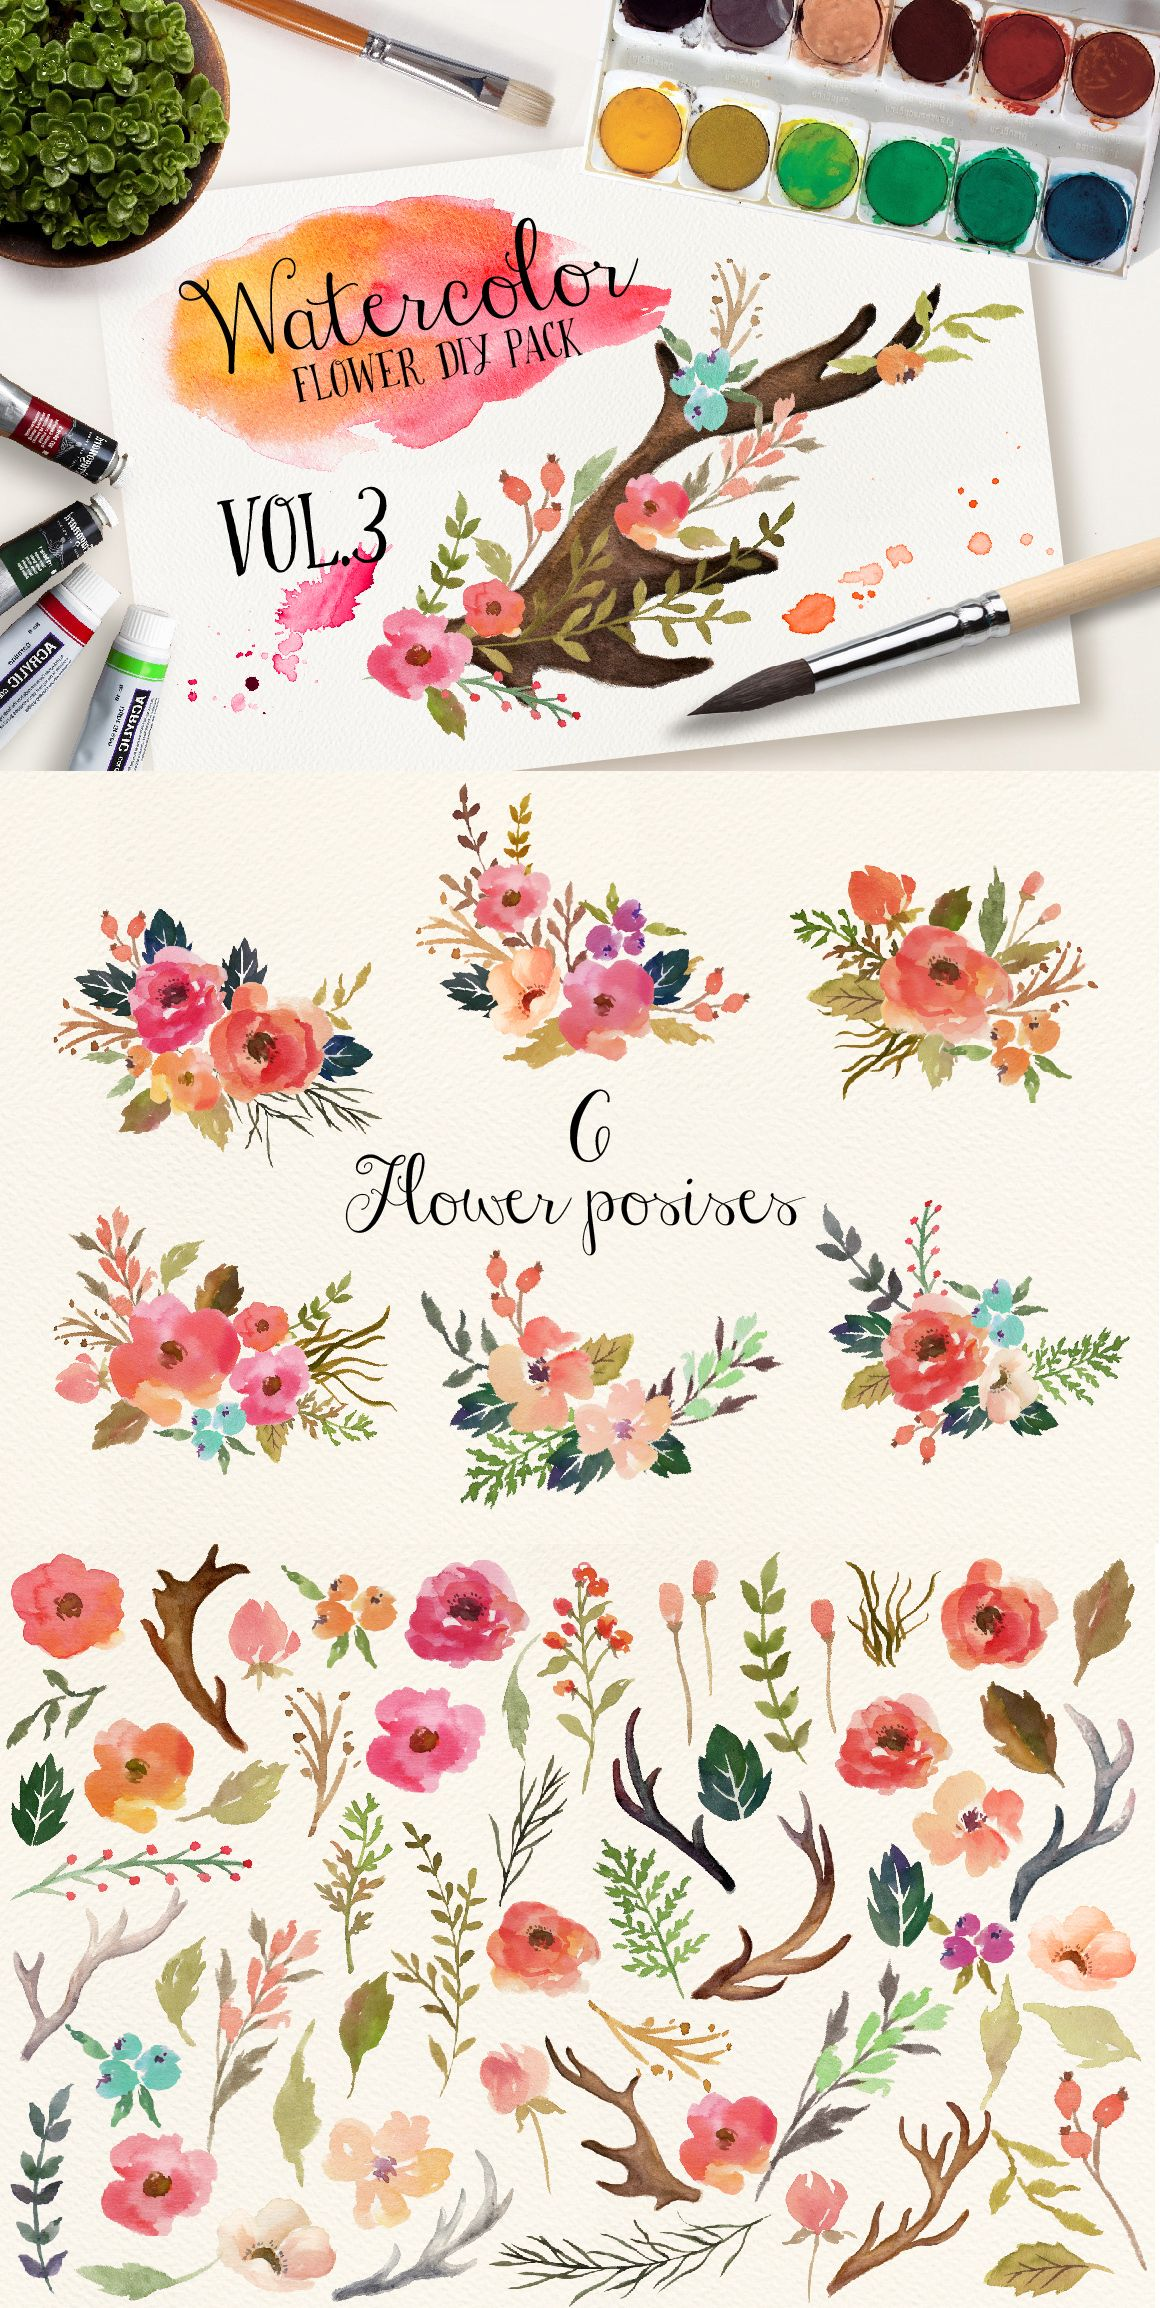 Watercolor flower DIY pack Vol.3 by Graphic Box on ...